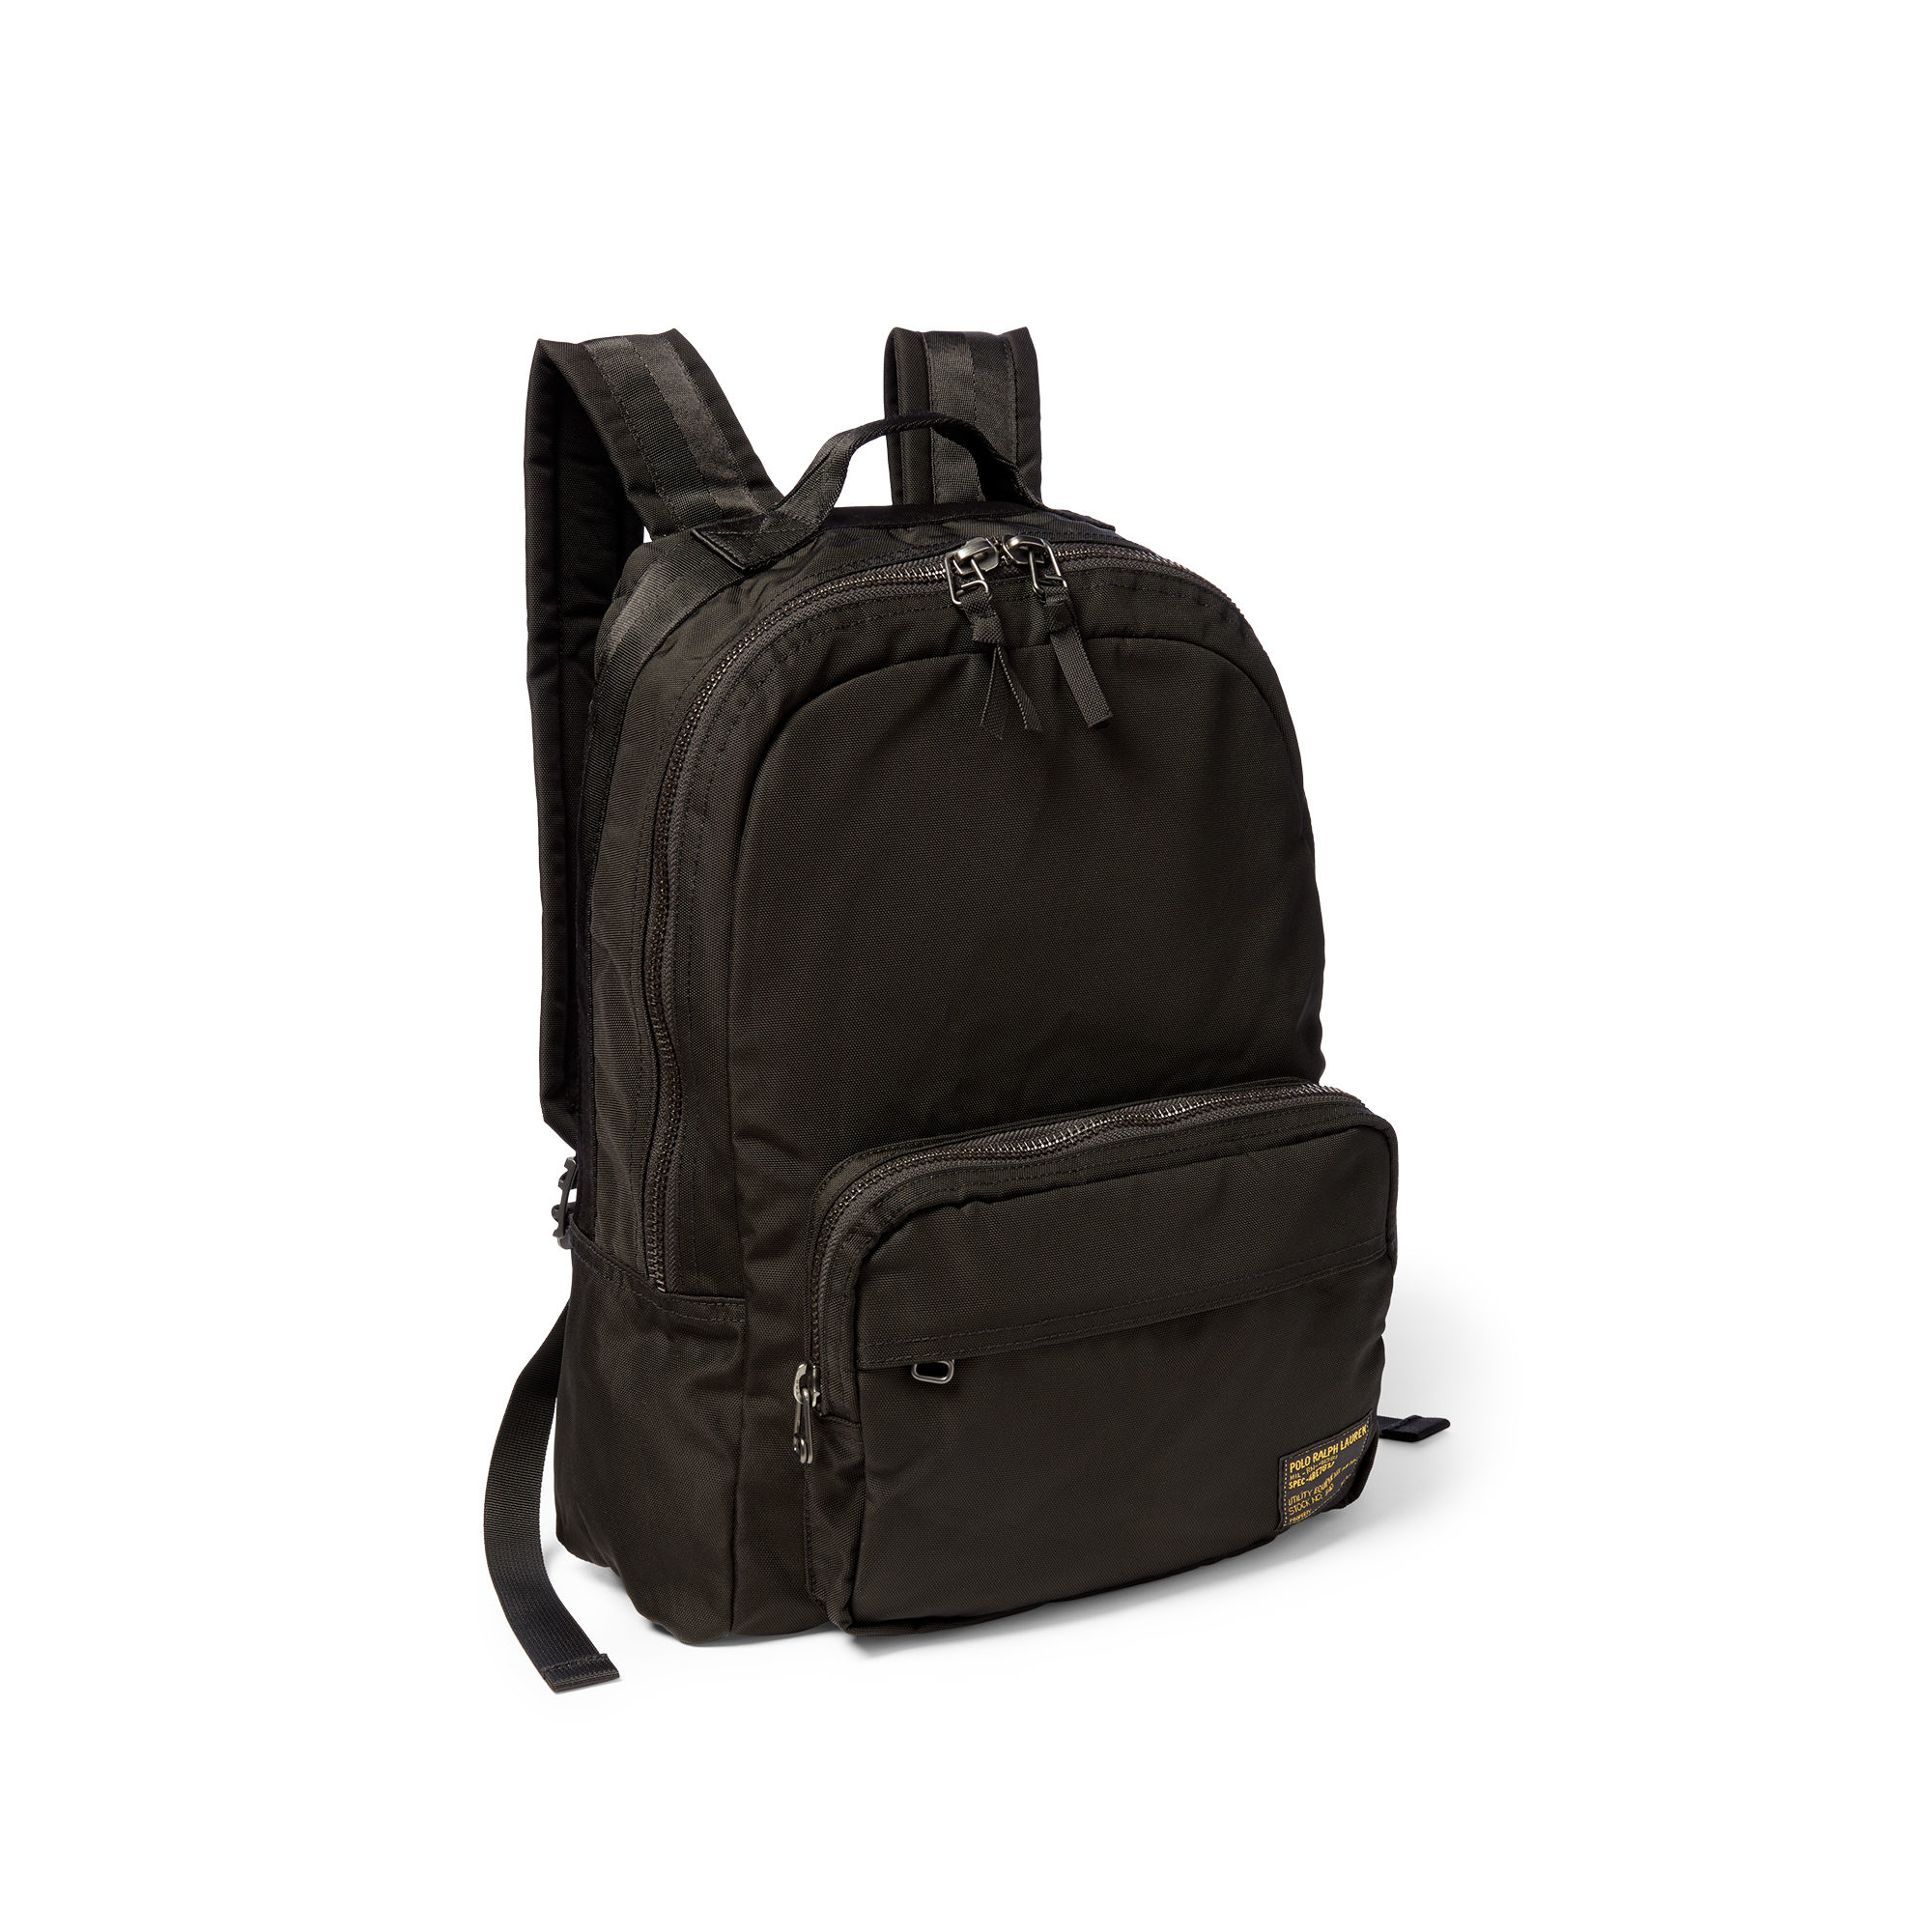 6ec36a47a858 Polo Ralph Lauren Military Nylon Dome Backpack in Black for Men - Lyst